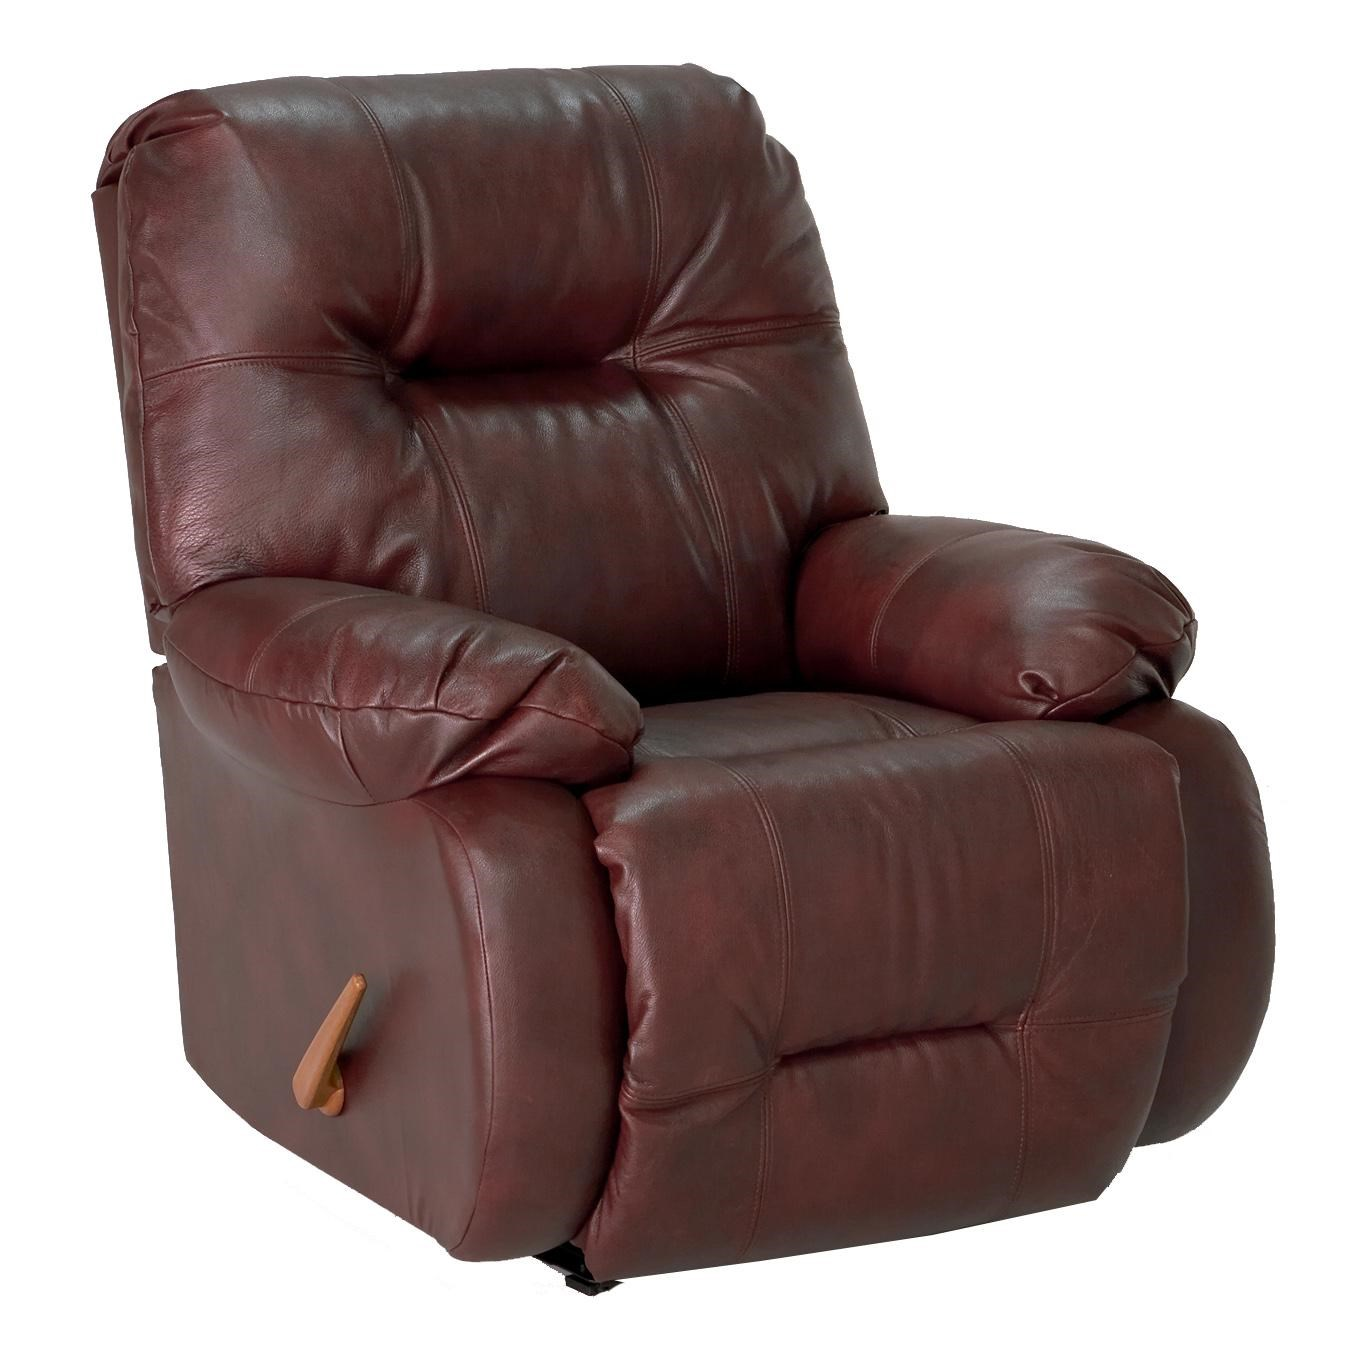 Best Home Furnishings Recliners - Medium Brinley Swivel Glide Recliner : Hudsonu0026#39;s Furniture ...